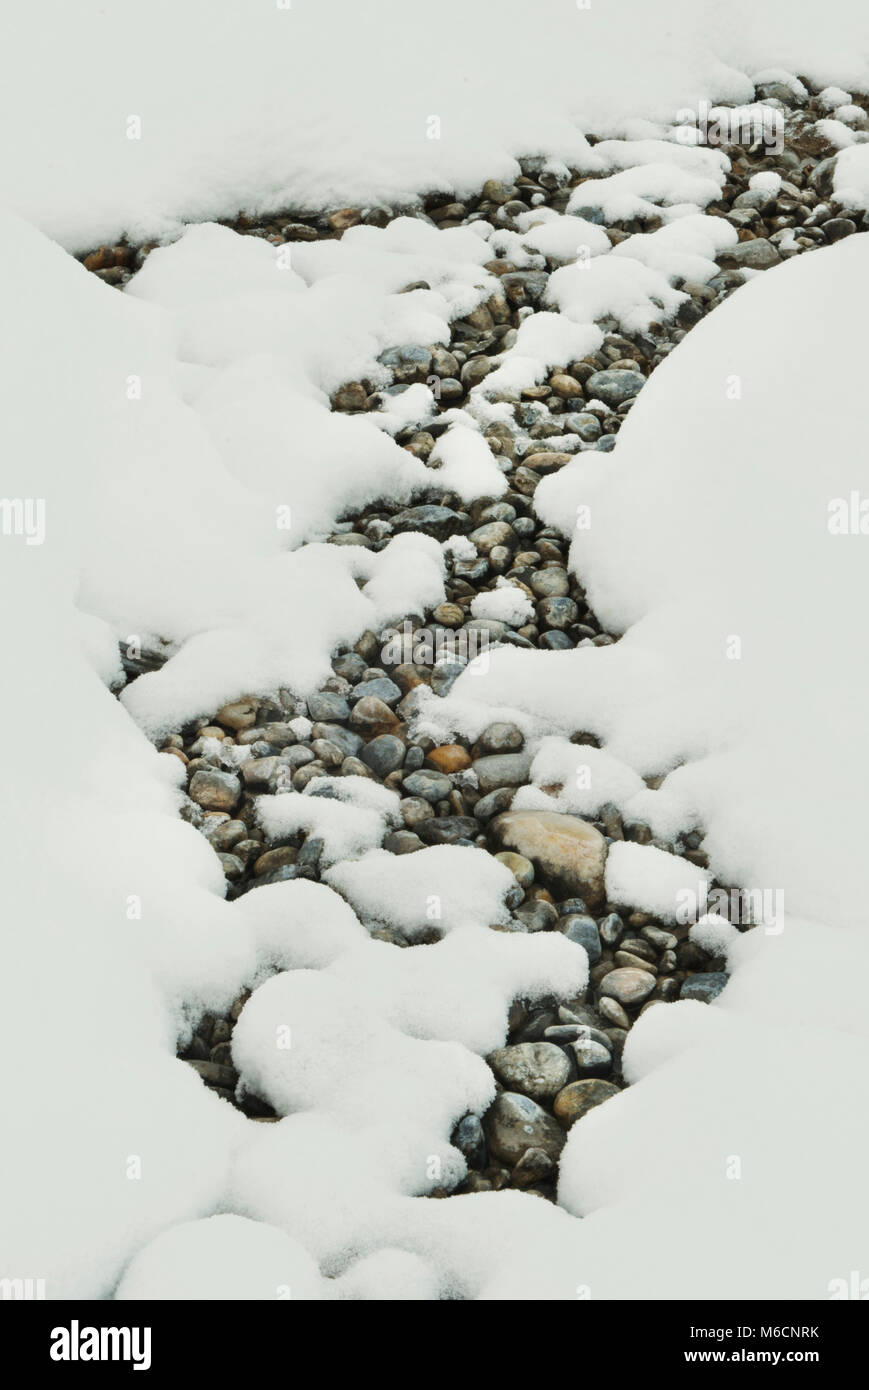 Pebbles and snow, Winter patterns, Banff National Park, Canadian Rockies, Alberta, CANADA Stock Photo